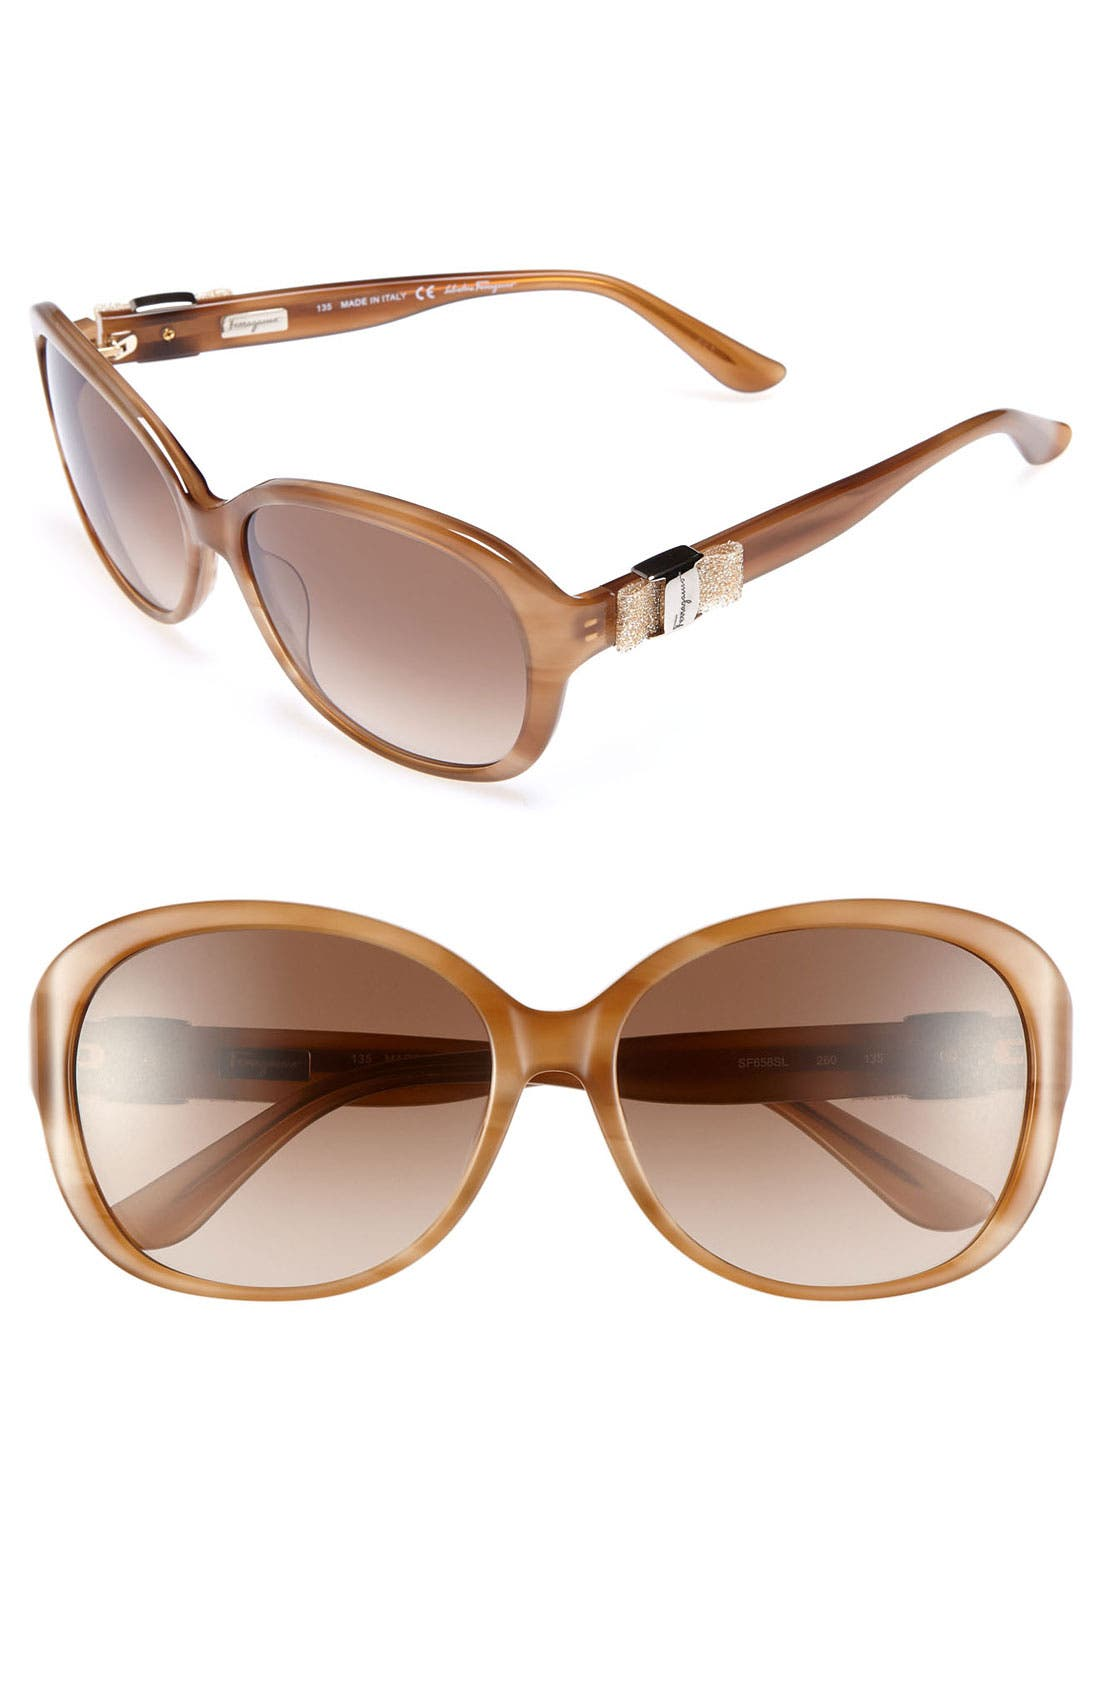 Alternate Image 1 Selected - Salvatore Ferragamo Oversized Sunglasses